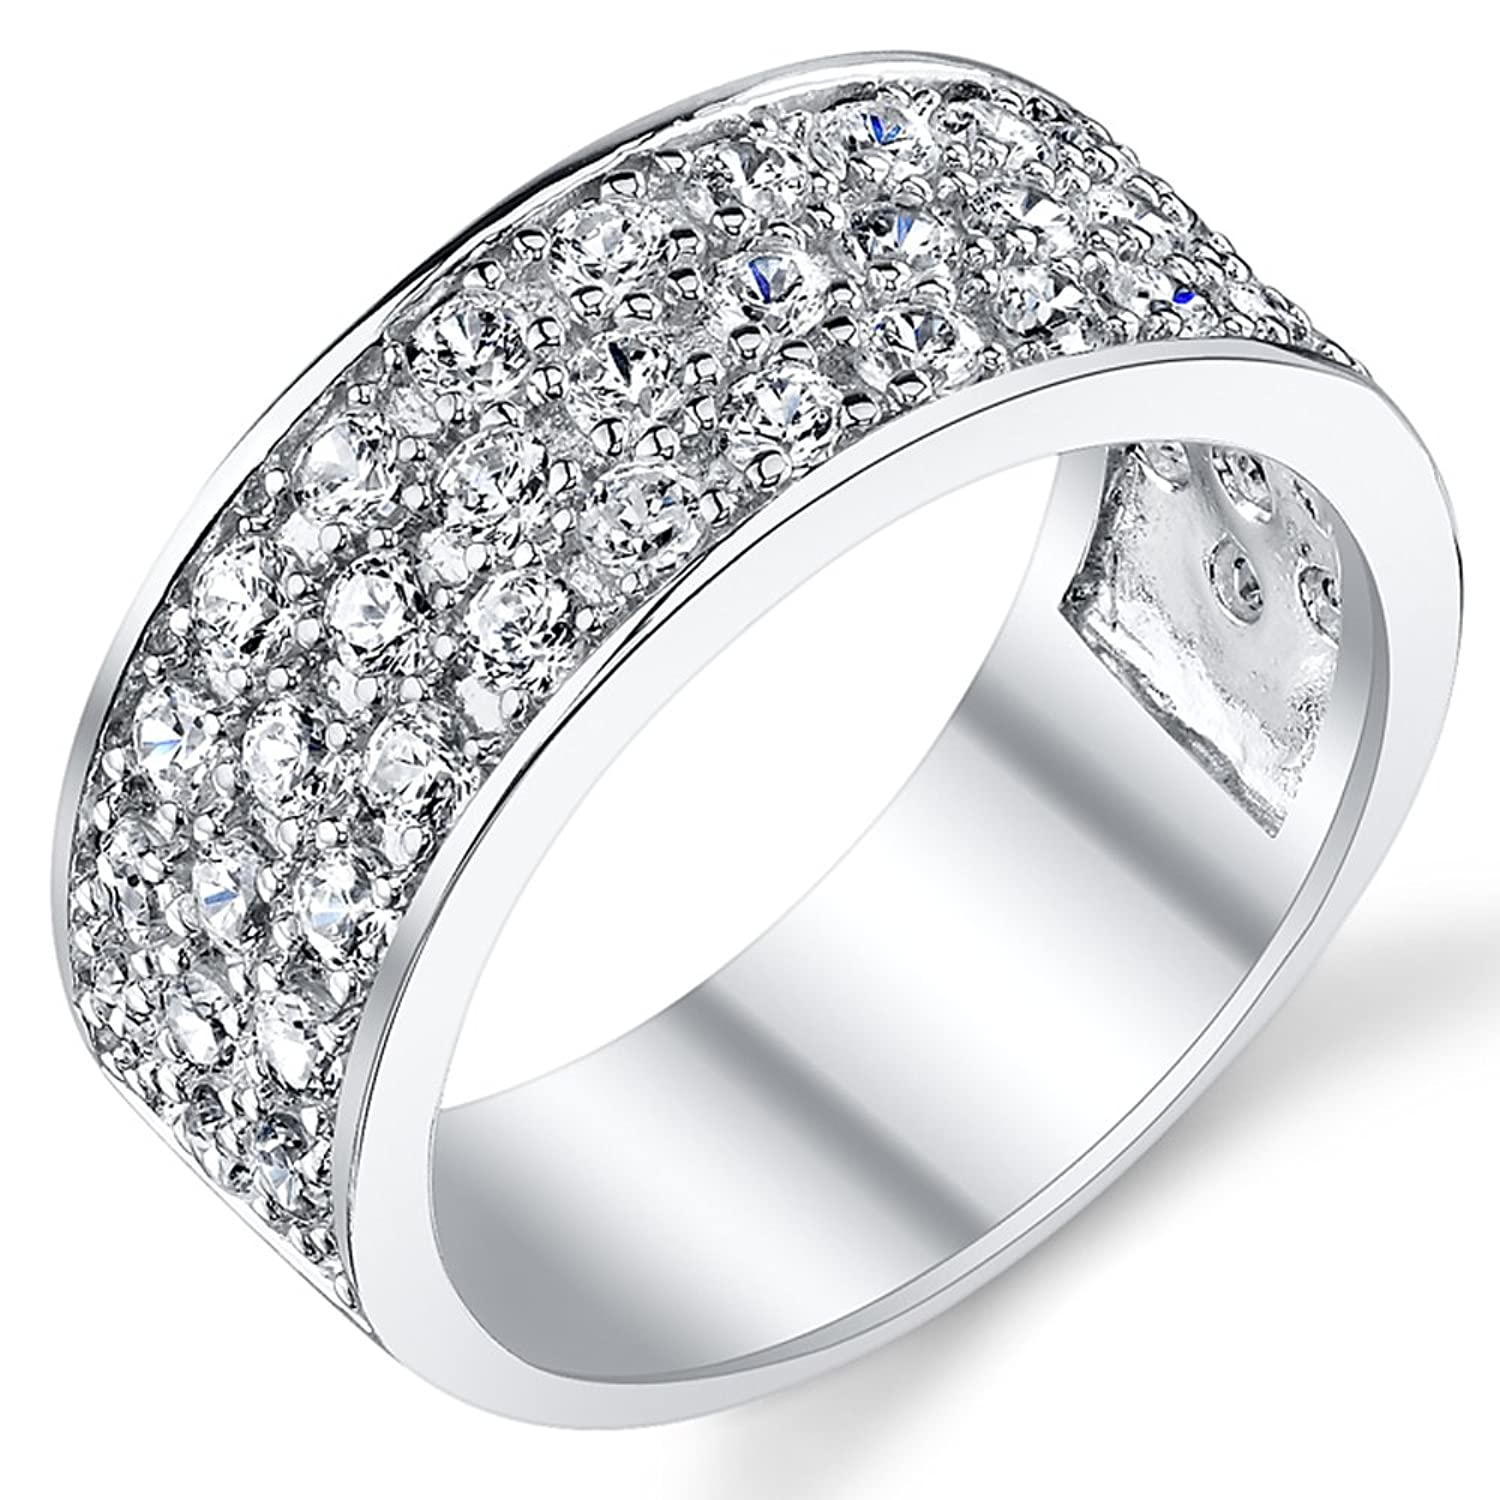 bands comes complete when and of unmatched in array wedding rings engagment an with time gabriel are to pairing eshop solitaire engagement co the versatility their banners diamond beautifully set bridal